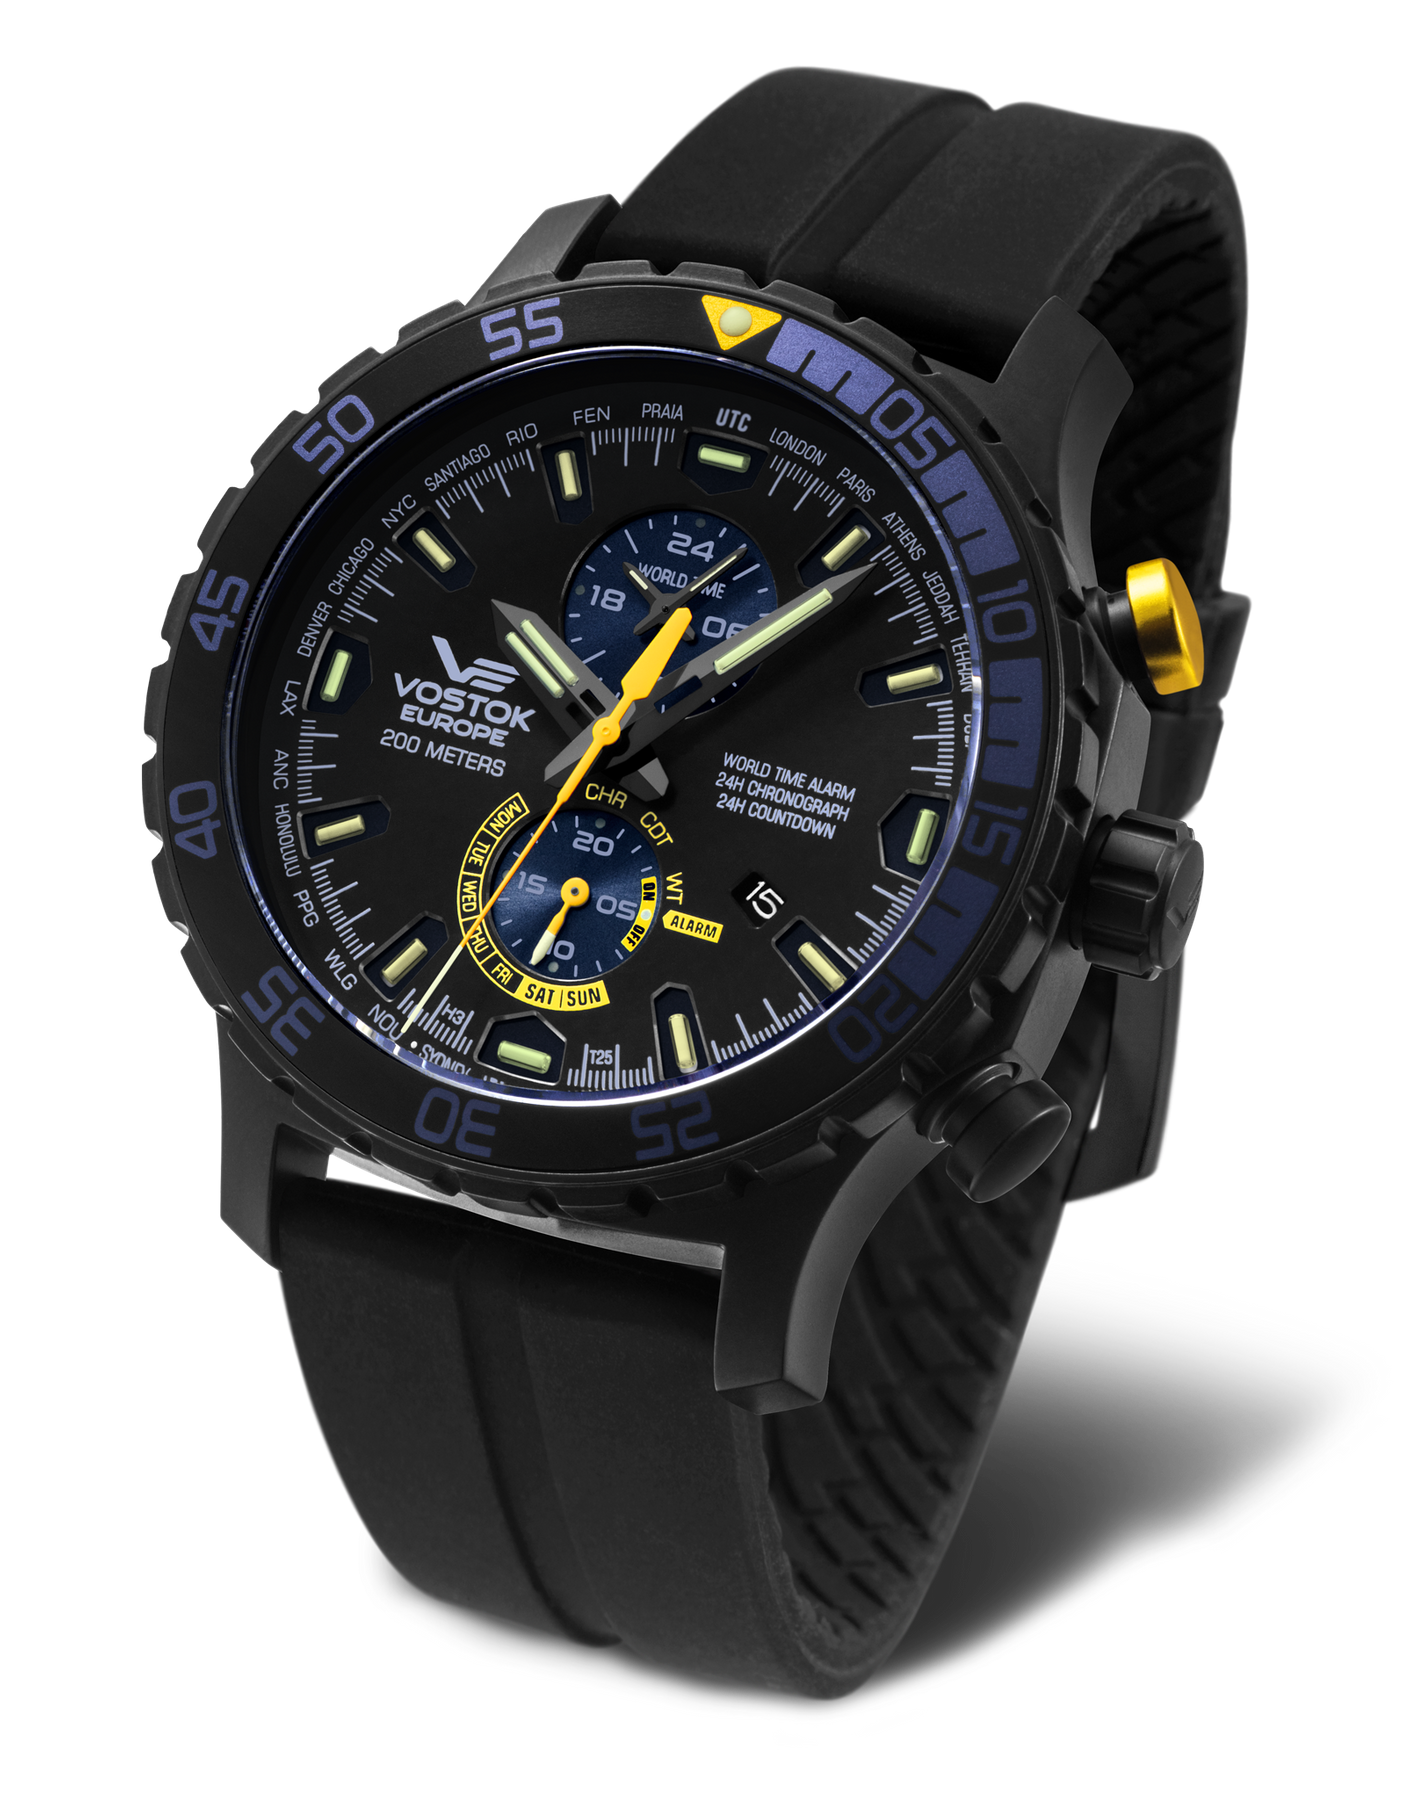 Vostok Europe Expedition Everest Underground YM8J-597C547 Alarmchrono